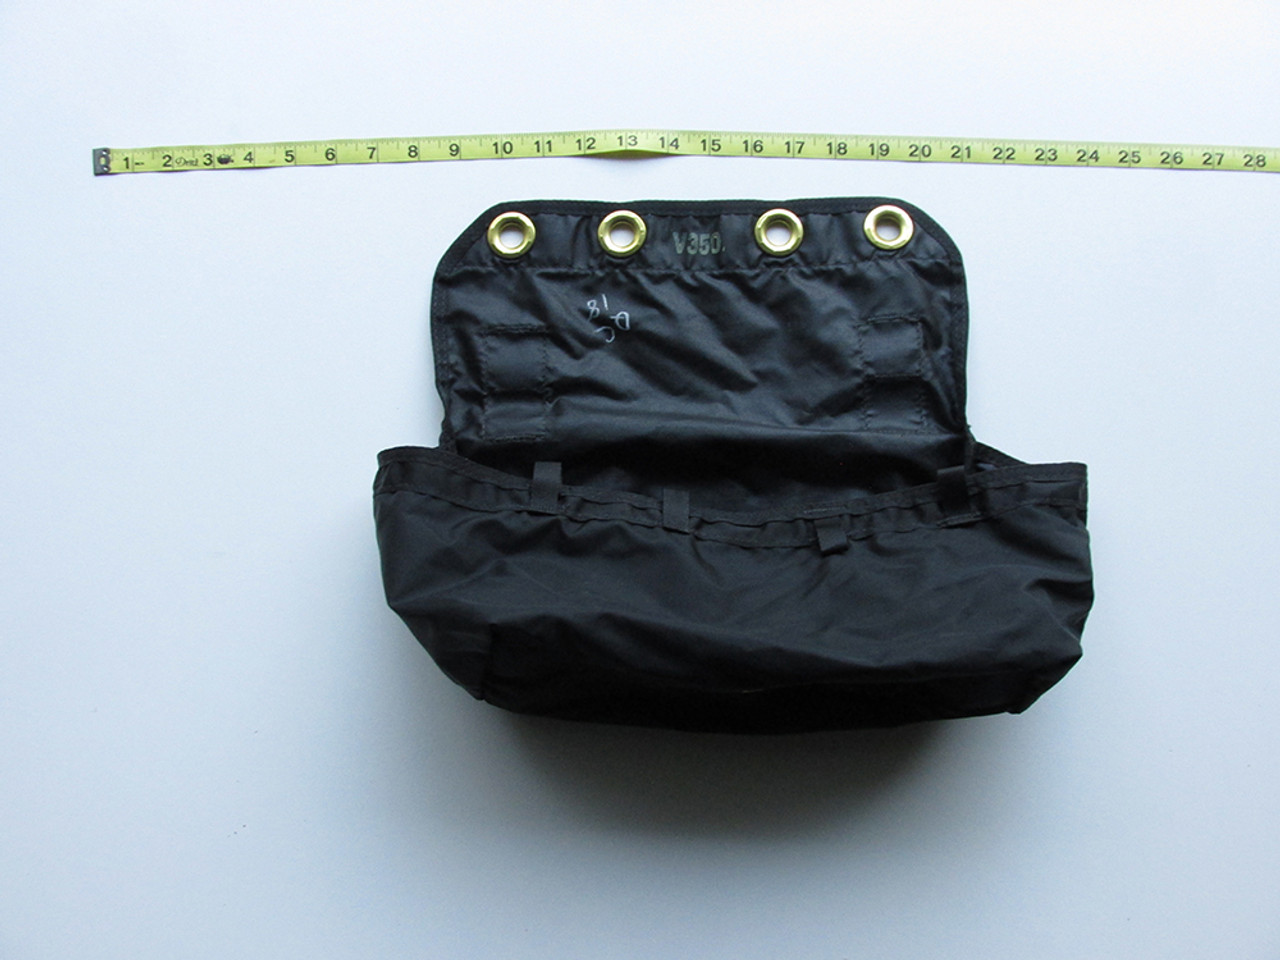 UPT V350-D-Bag (New)